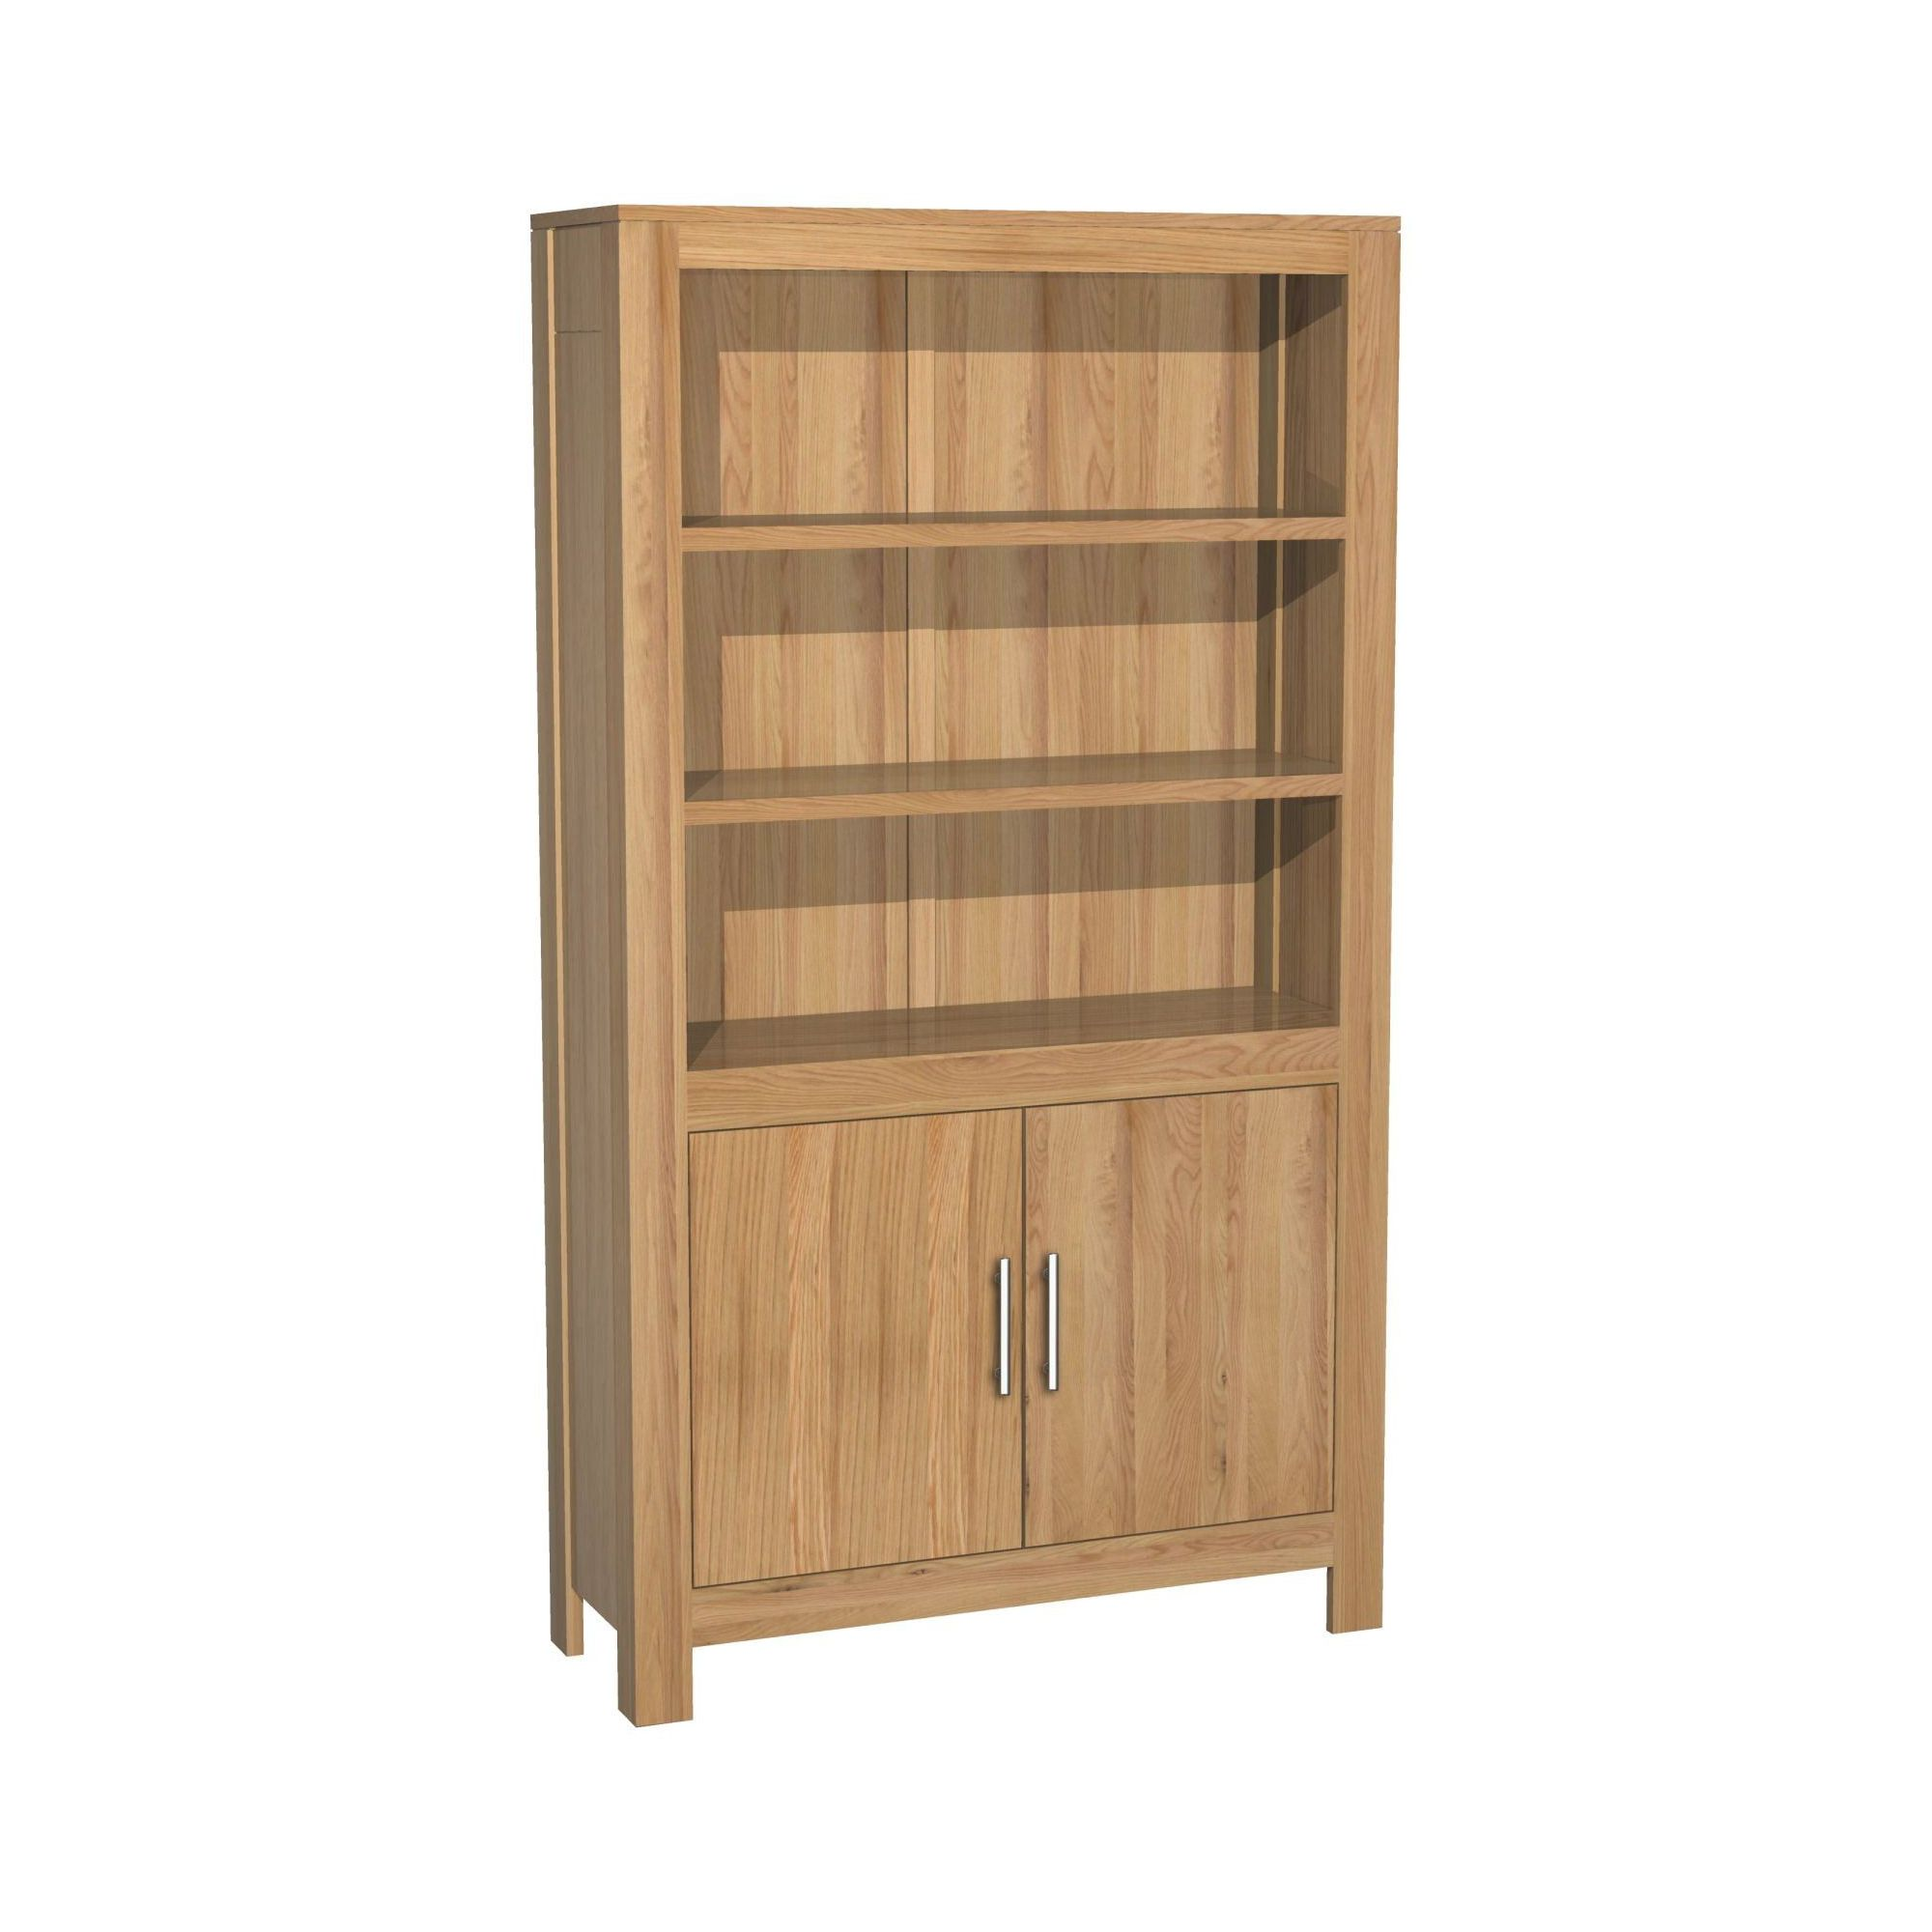 Kelburn Furniture Milano Cupboard Bookcase in Clear Satin Lacquer at Tesco Direct